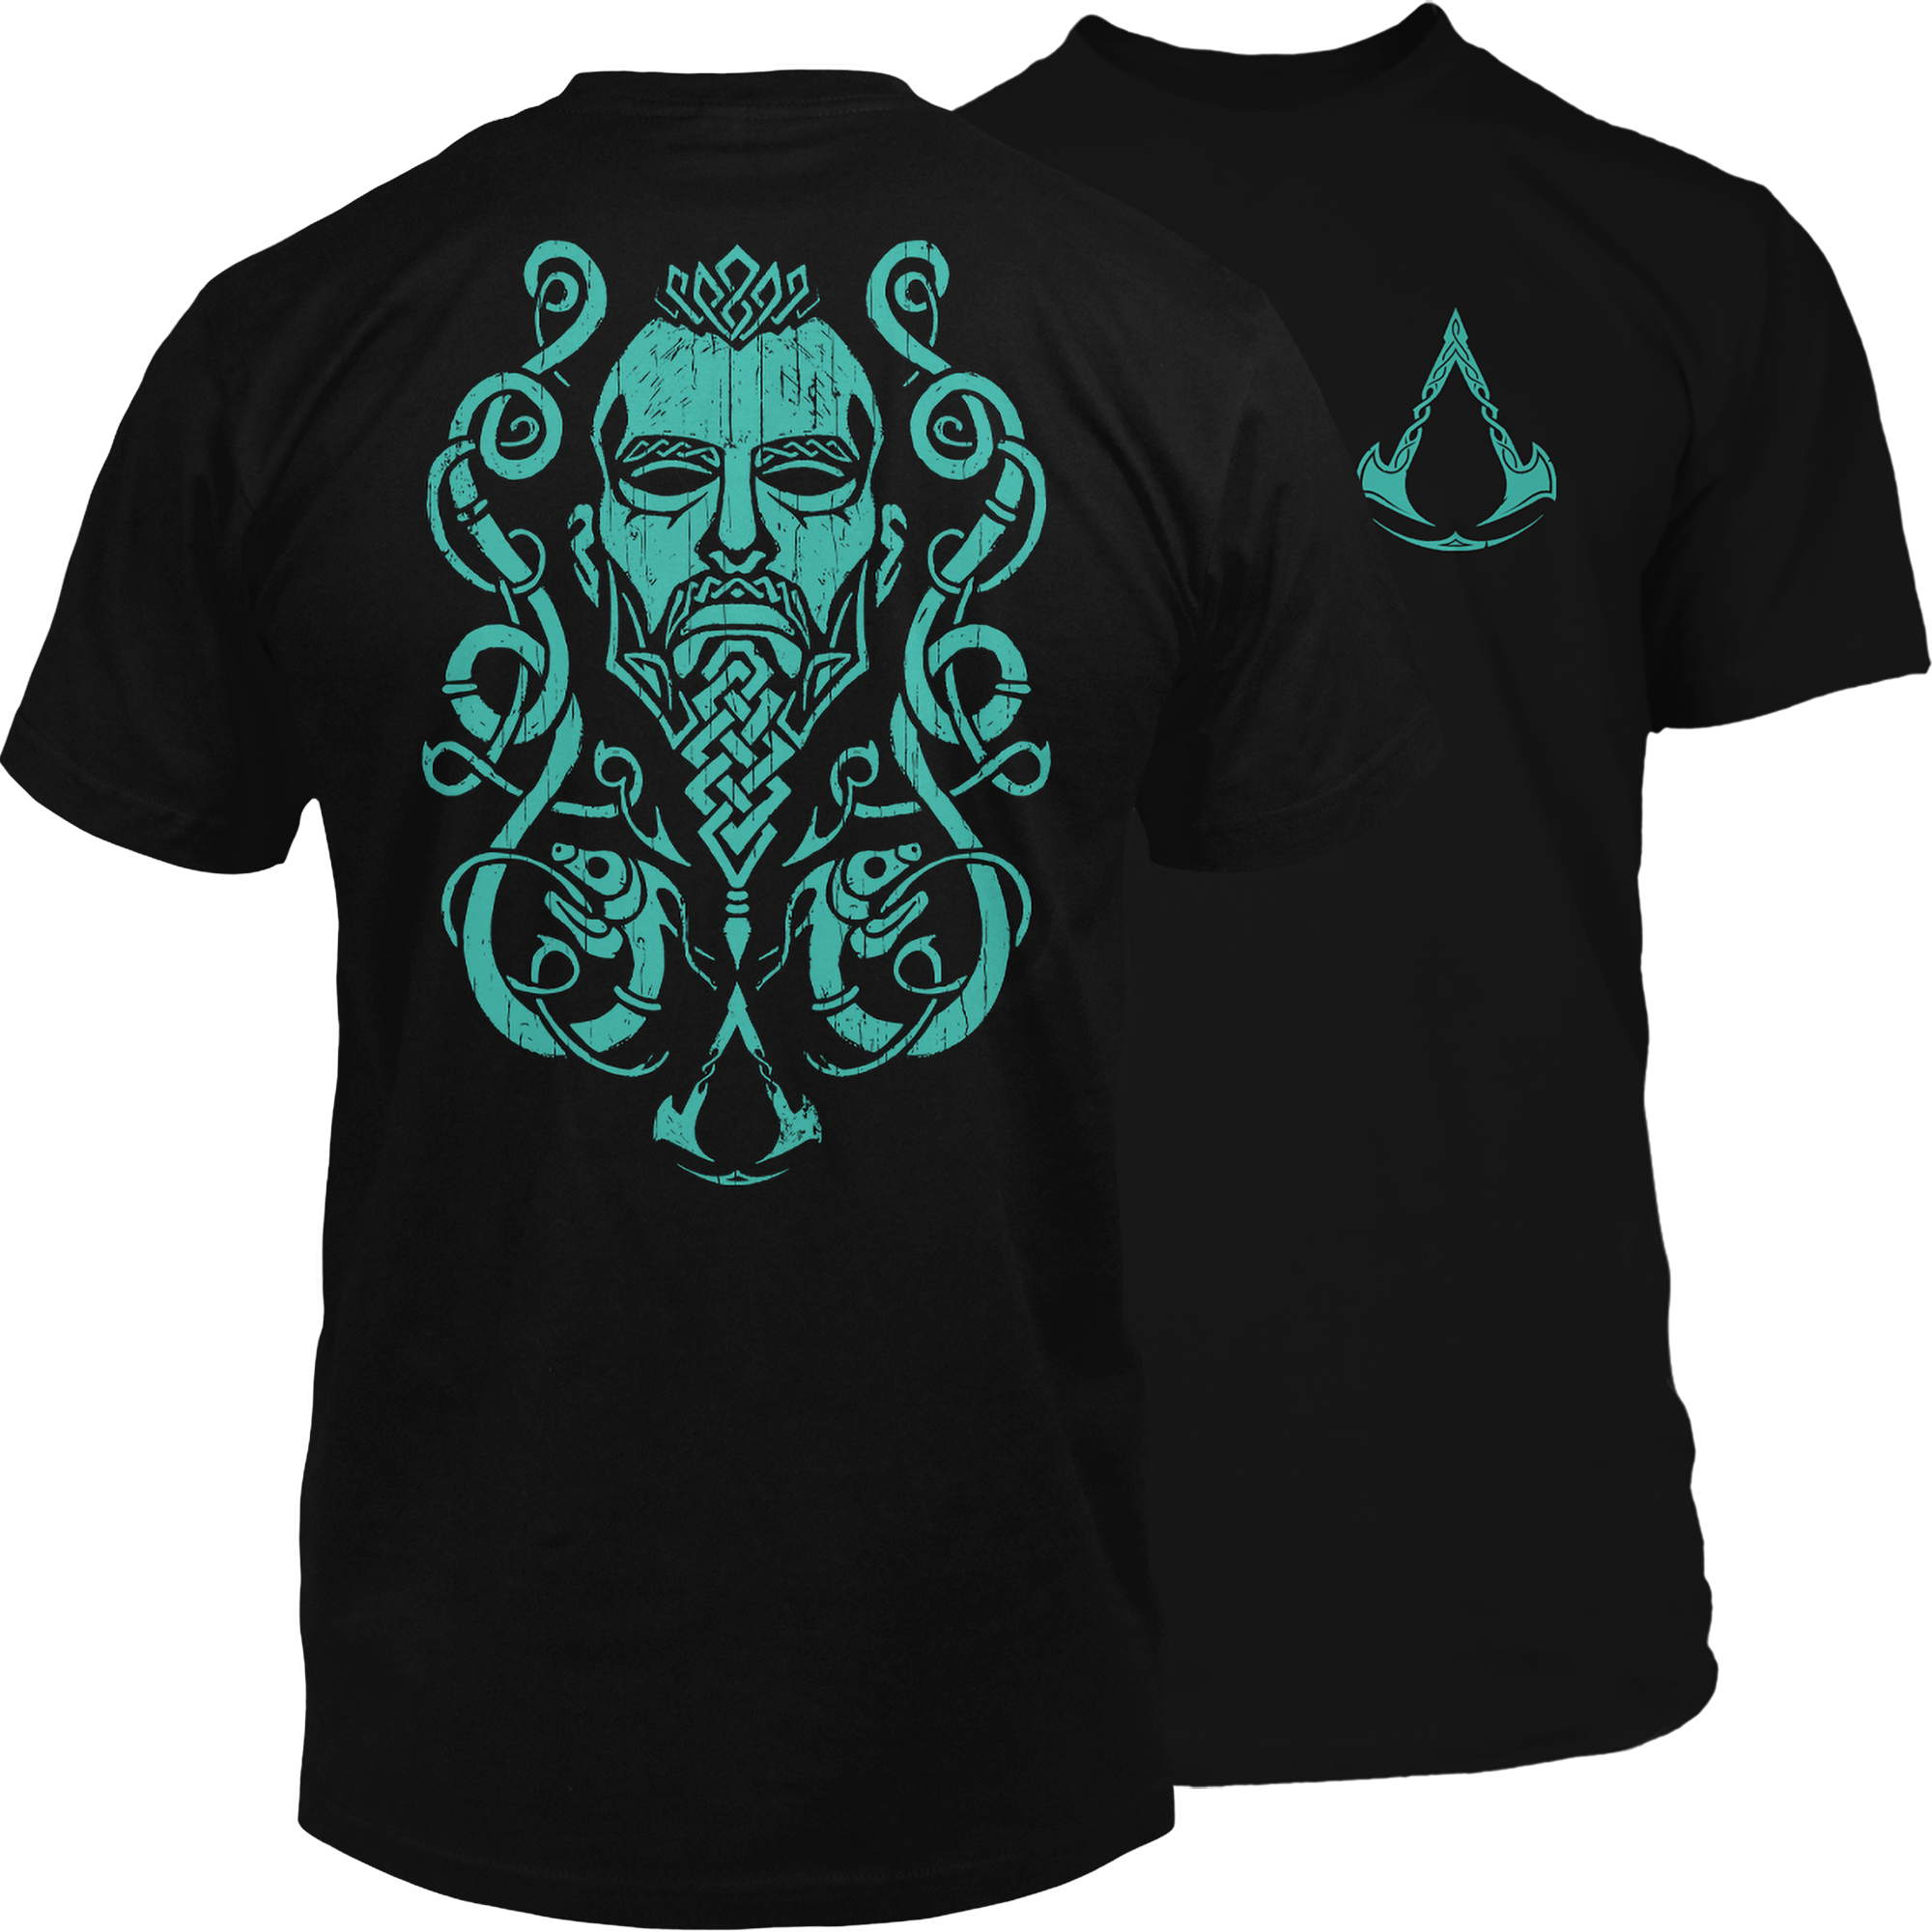 Product image of the Assassin's Creed Valhalla Warrior Premium Tee